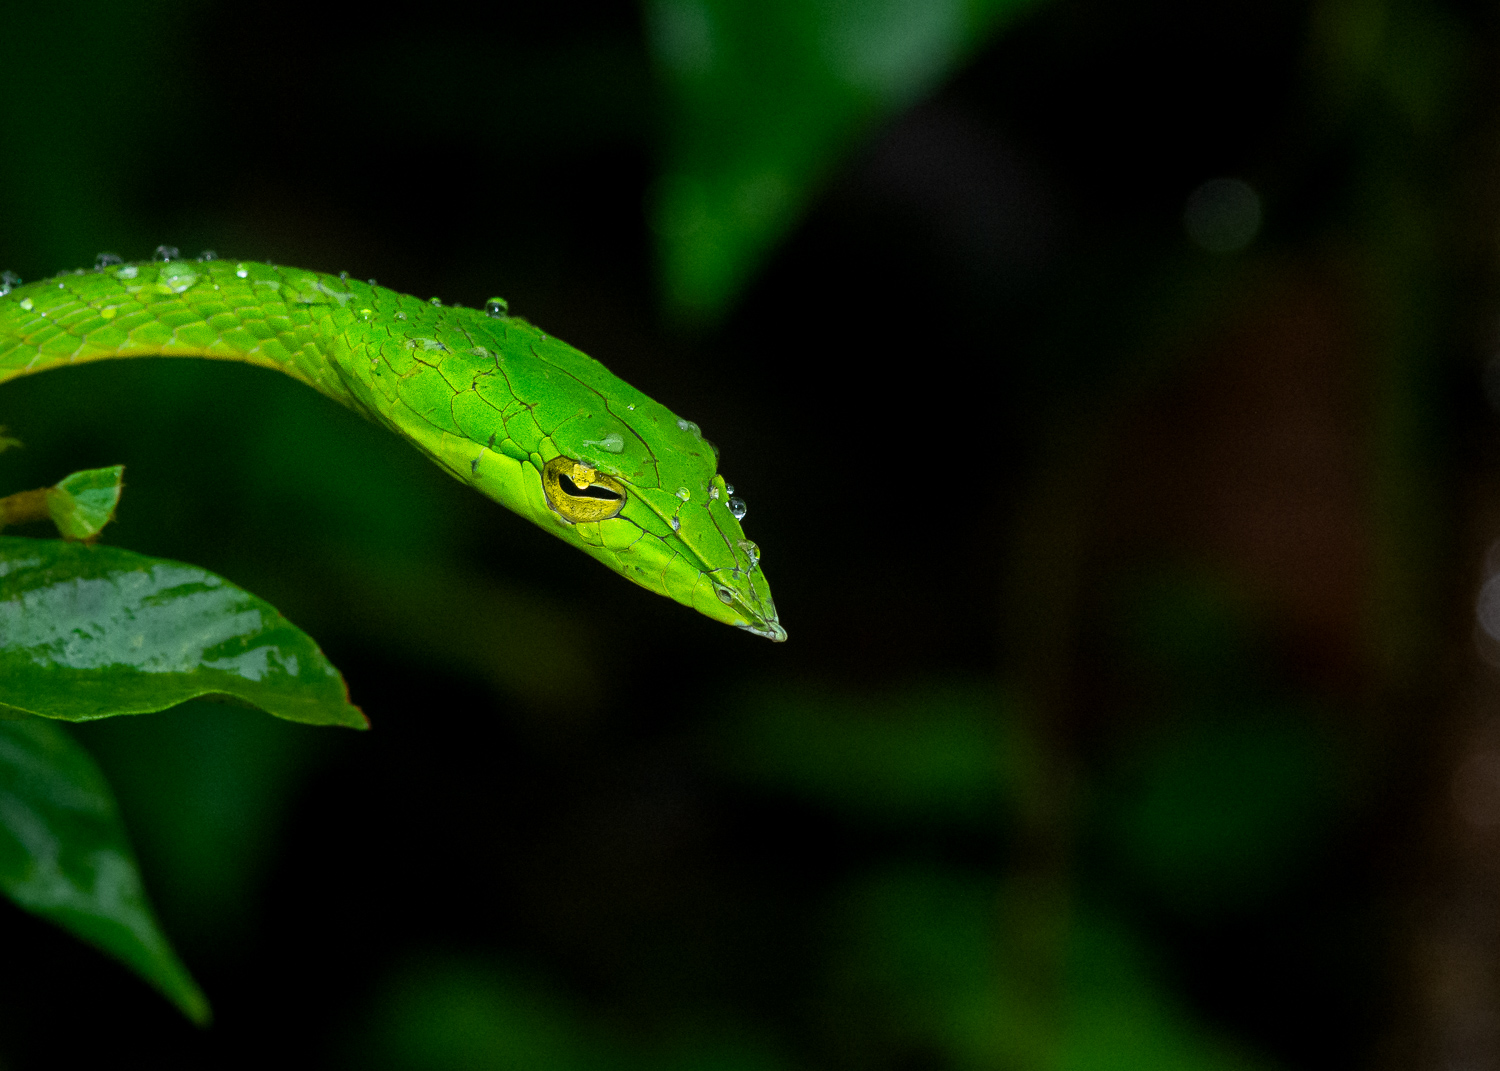 How to Choose the Best Lens for Wildlife Photography - Green vine snake